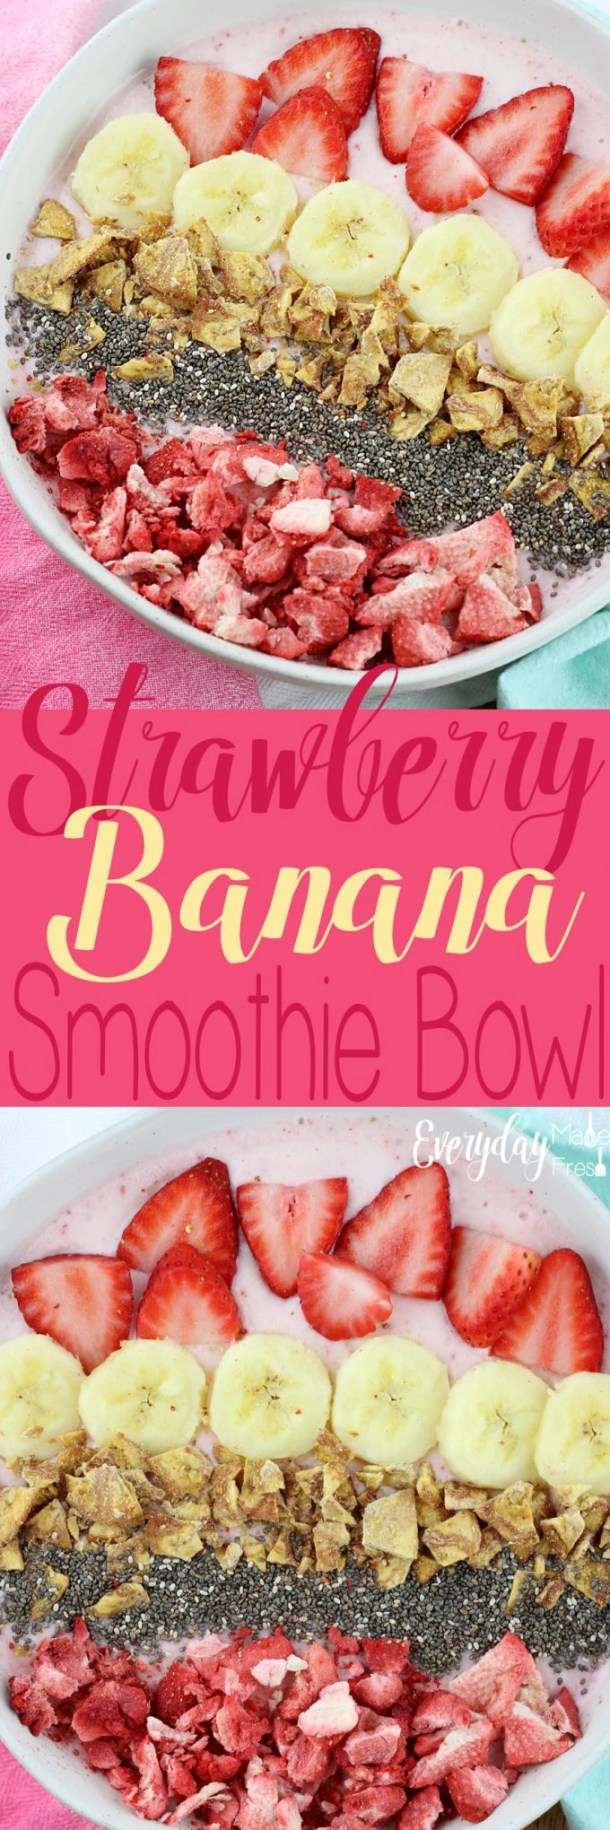 This Strawberry Banana Smoothie Bowl is easy to toss together, and tastes amazing! Totally filling, and topped with all the things you want to crunch on! | EverydayMadeFresh.com